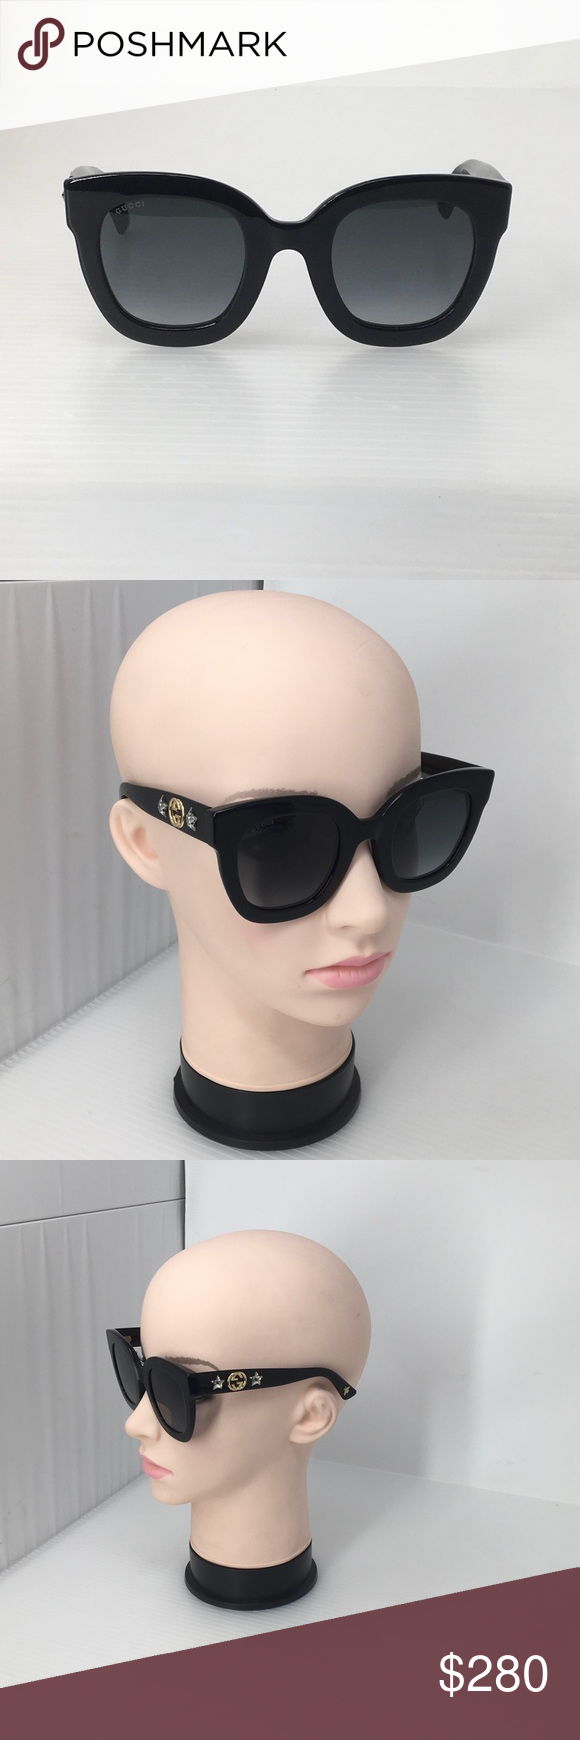 28c4af242b Gucci Round Frame Acetate Sunglasses with Stars Department store return.  Black acetate frame - Black acetate temples with interlocking G and crystal  star ...